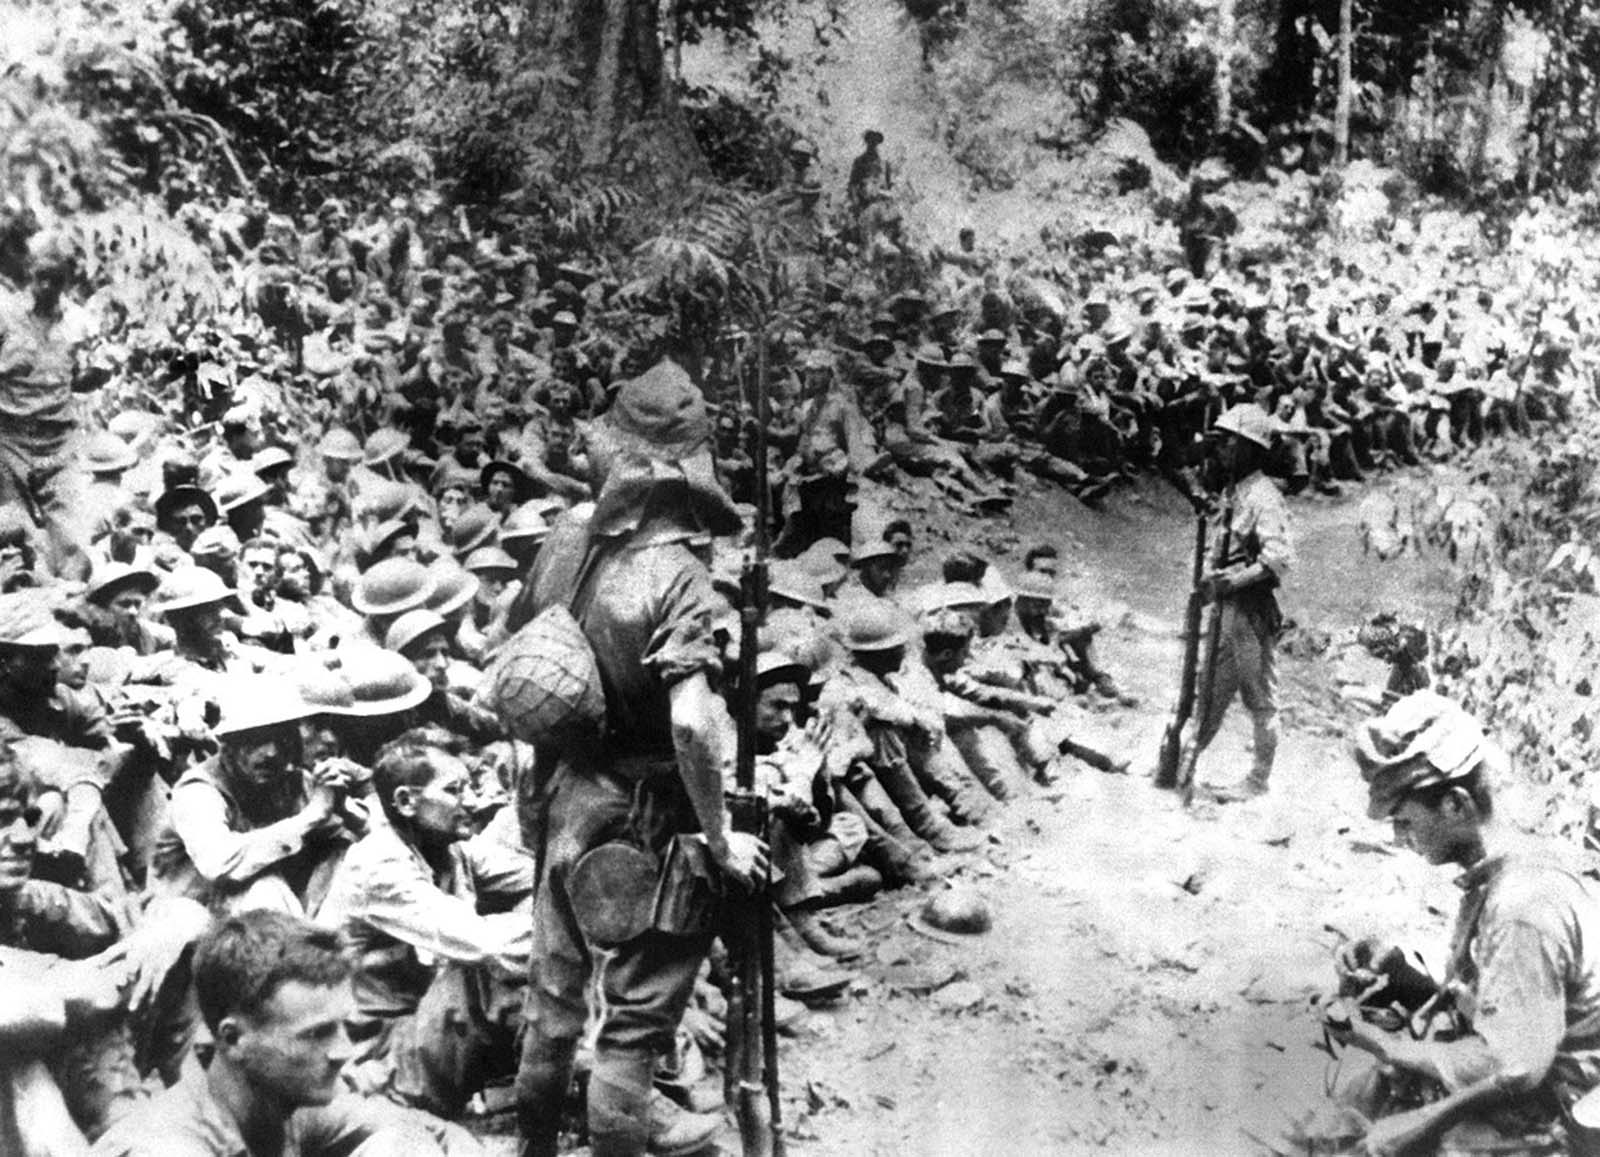 Japanese soldiers stand guard over American war prisoners just before the start of the